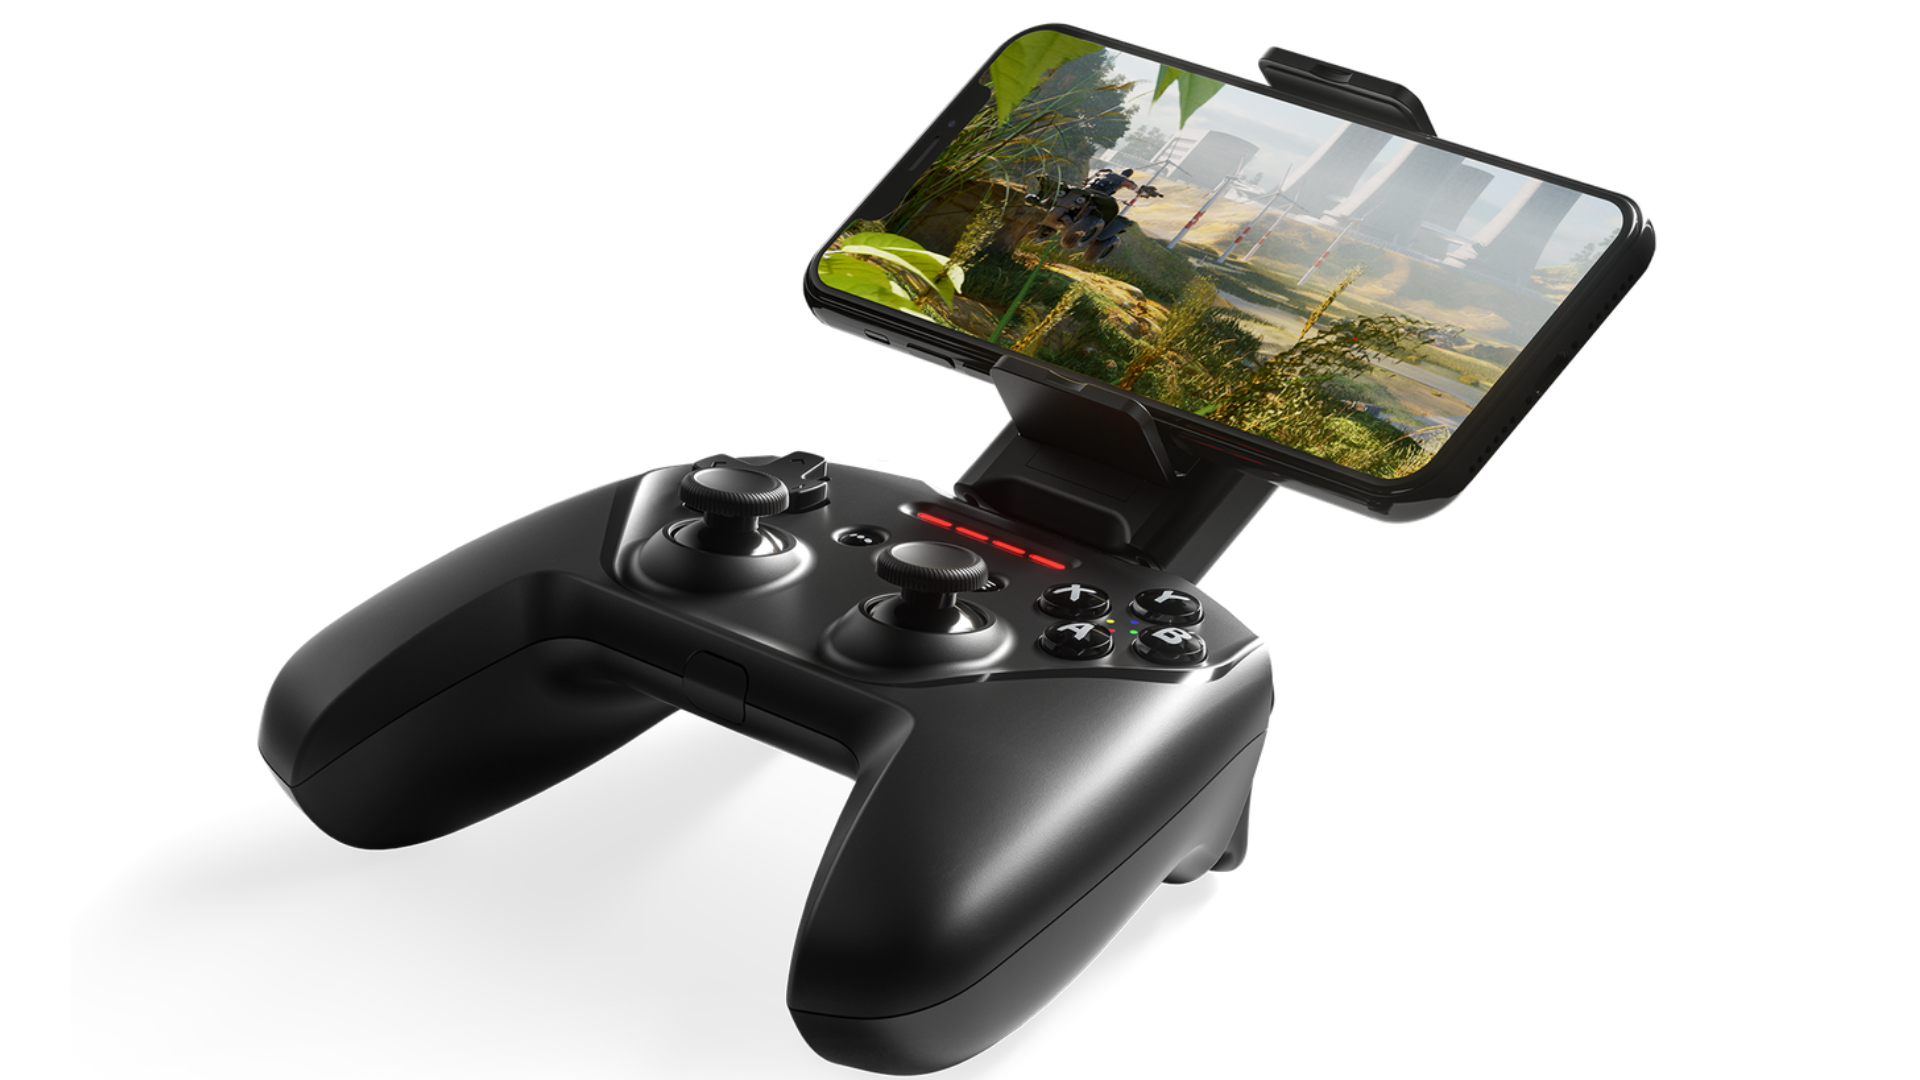 The SteelSeries Nimbus+ controller in black with an iPhone mounted to it.